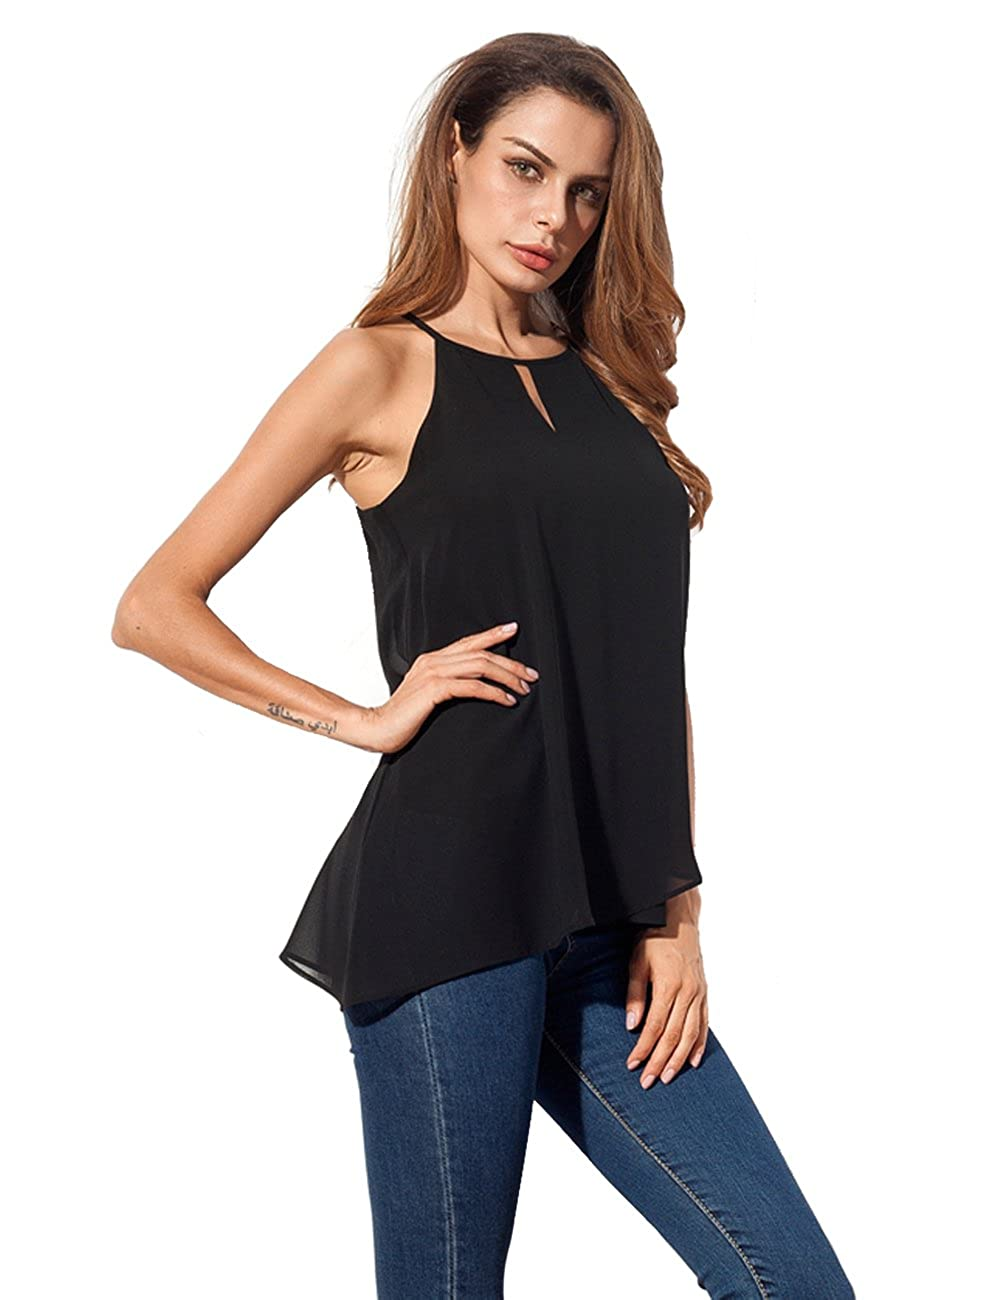 5133be71780614 Amazon.com  Womens Chiffon Tank Tops Flowy Casual Halter Loose Sleeveless  Shirts  Clothing